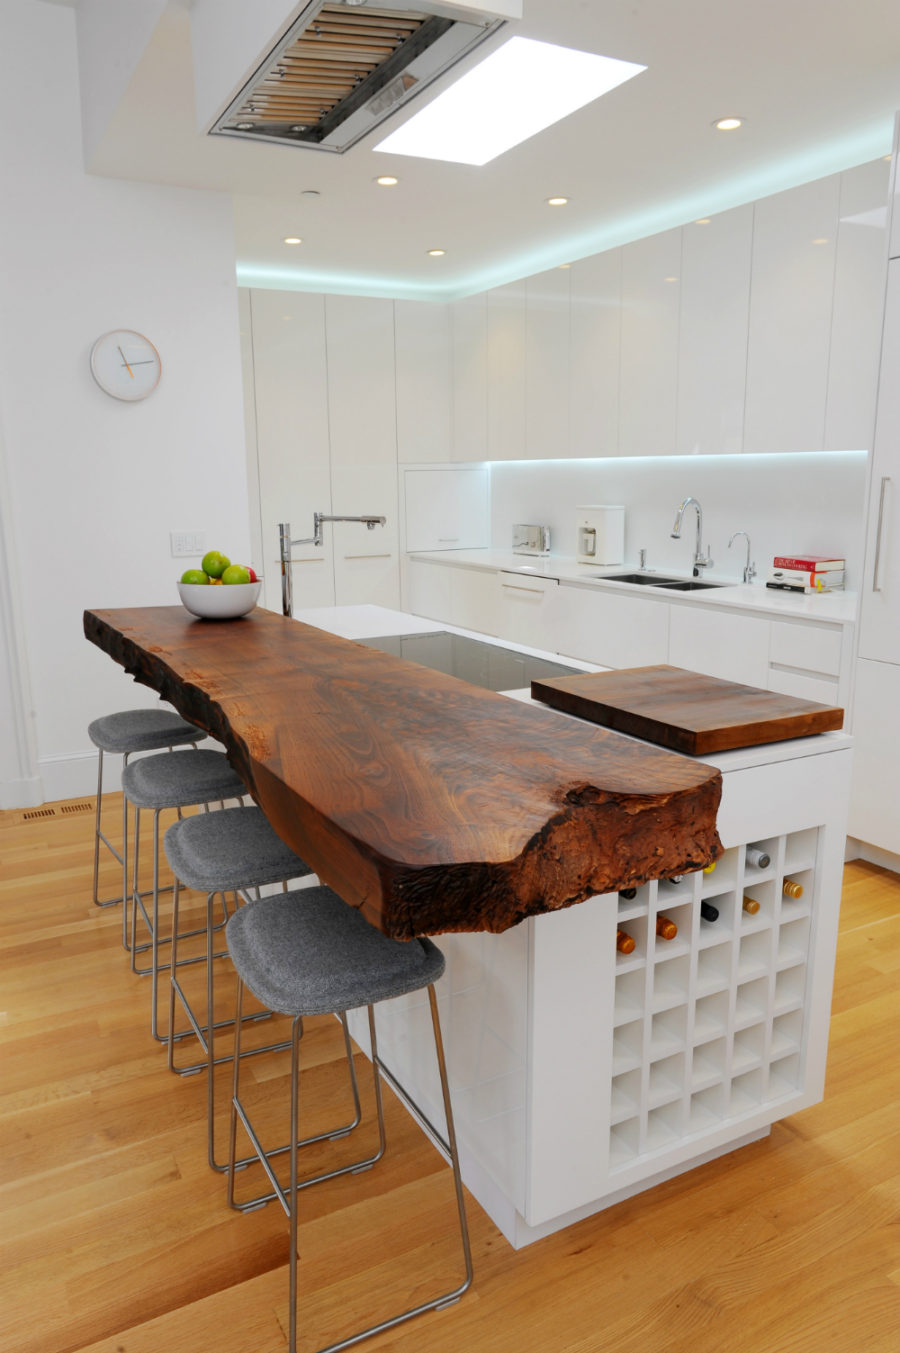 Live-edge kitchen countertop